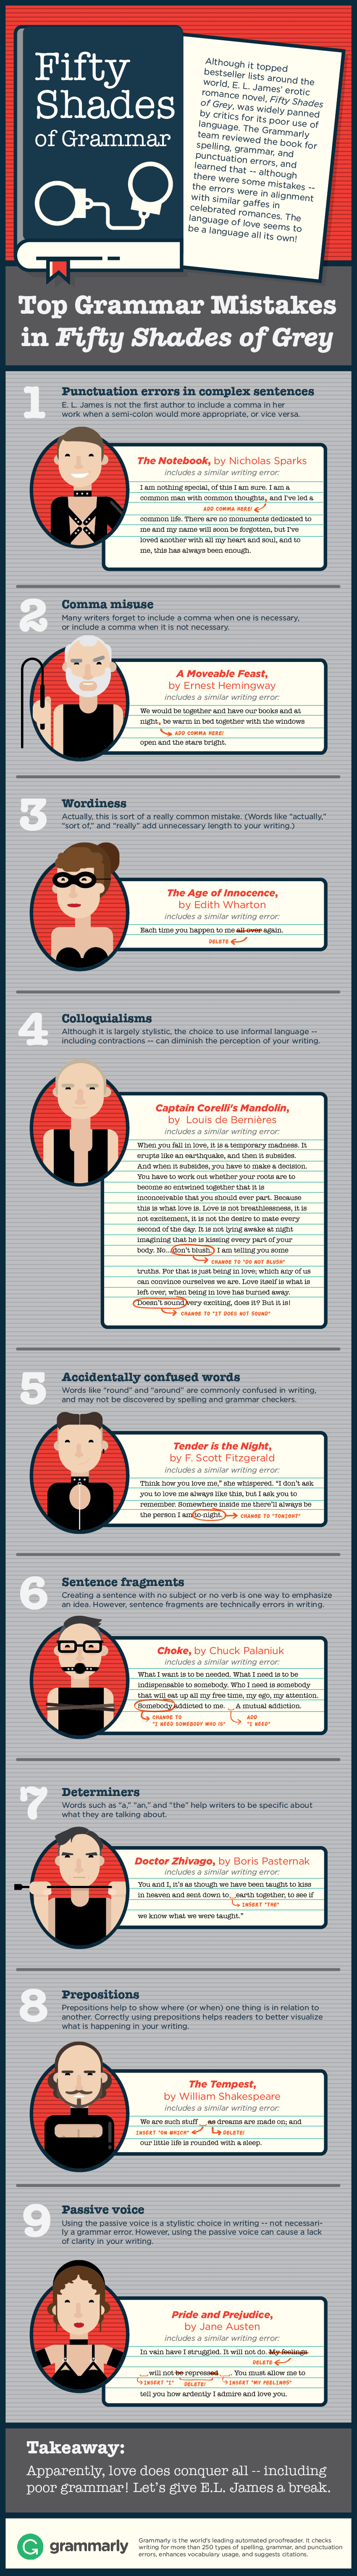 Fifty Shades of Grammar by Grammarly